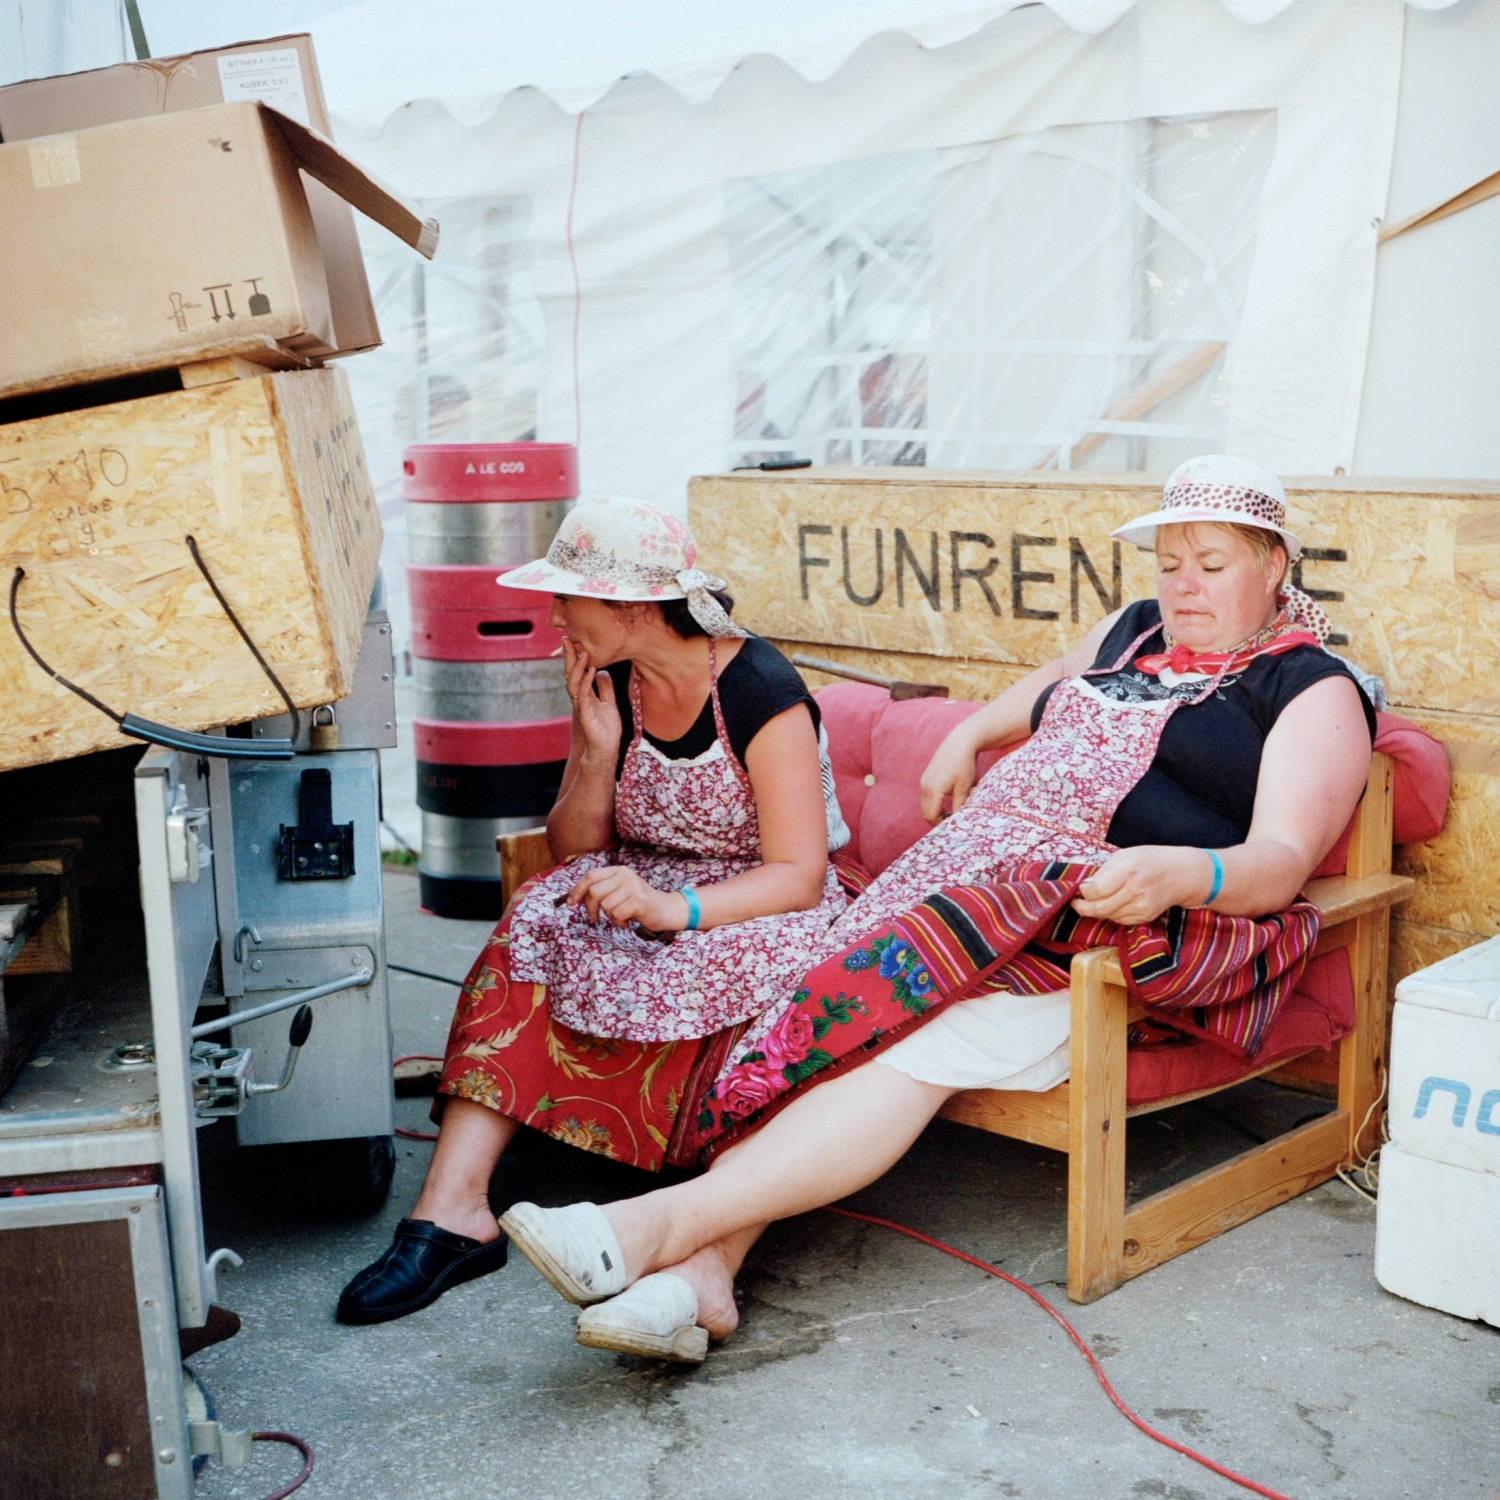 Driven by season, summer is economically important for the island. A lot of people come from the continent. Here during the Mere Pidu (sea festival) Talvi and Merike are resting in between shifts in the kitchen.